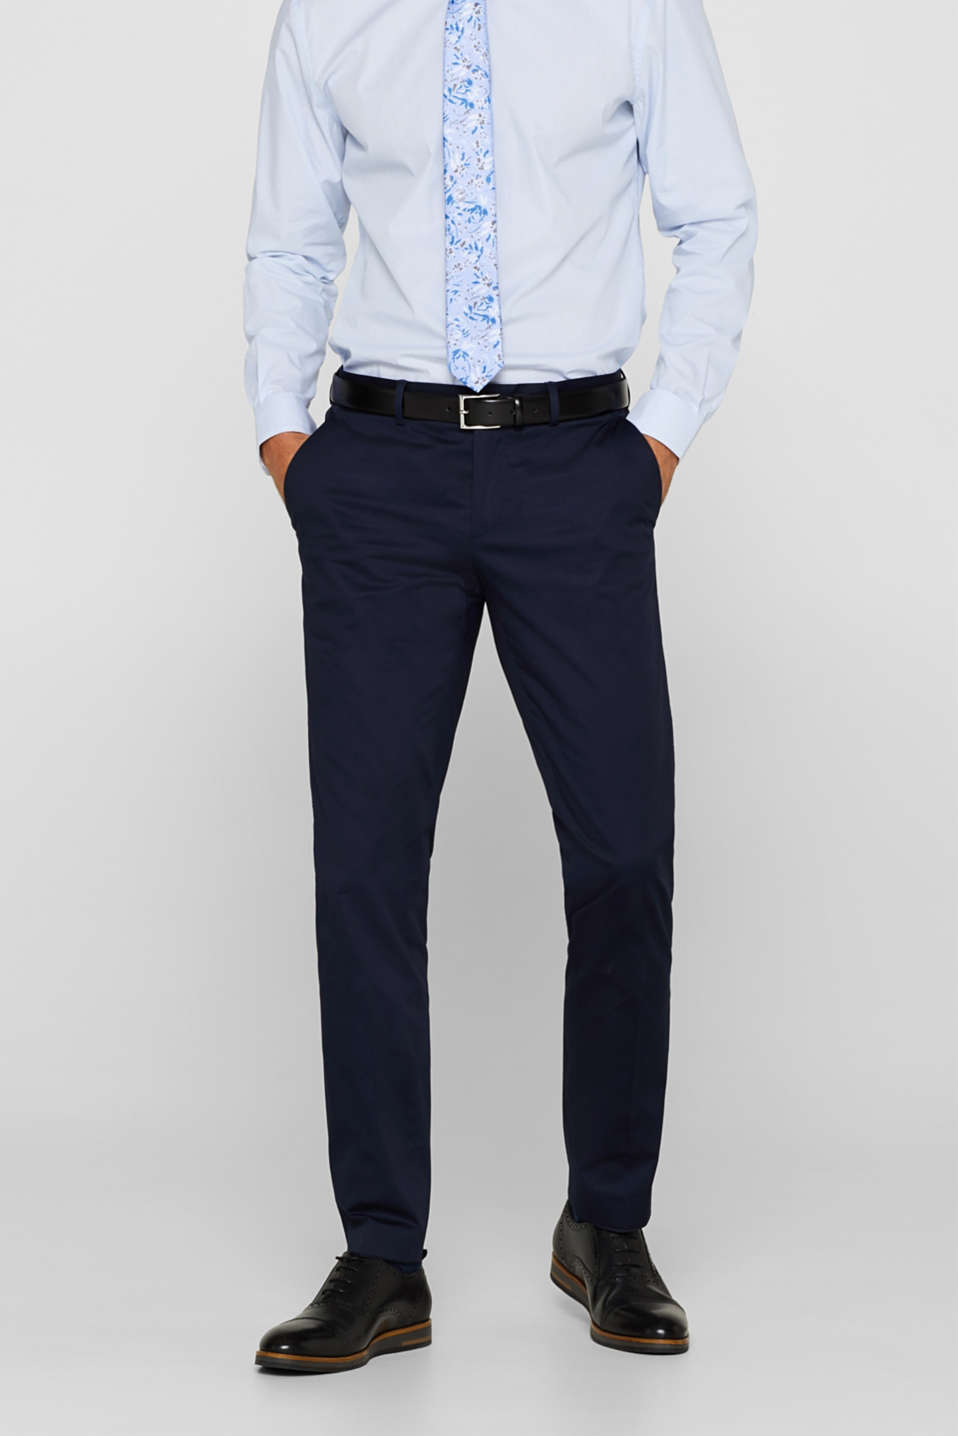 Esprit - SATIN Mix + Match : le pantalon de costume à plis de repassage permanents